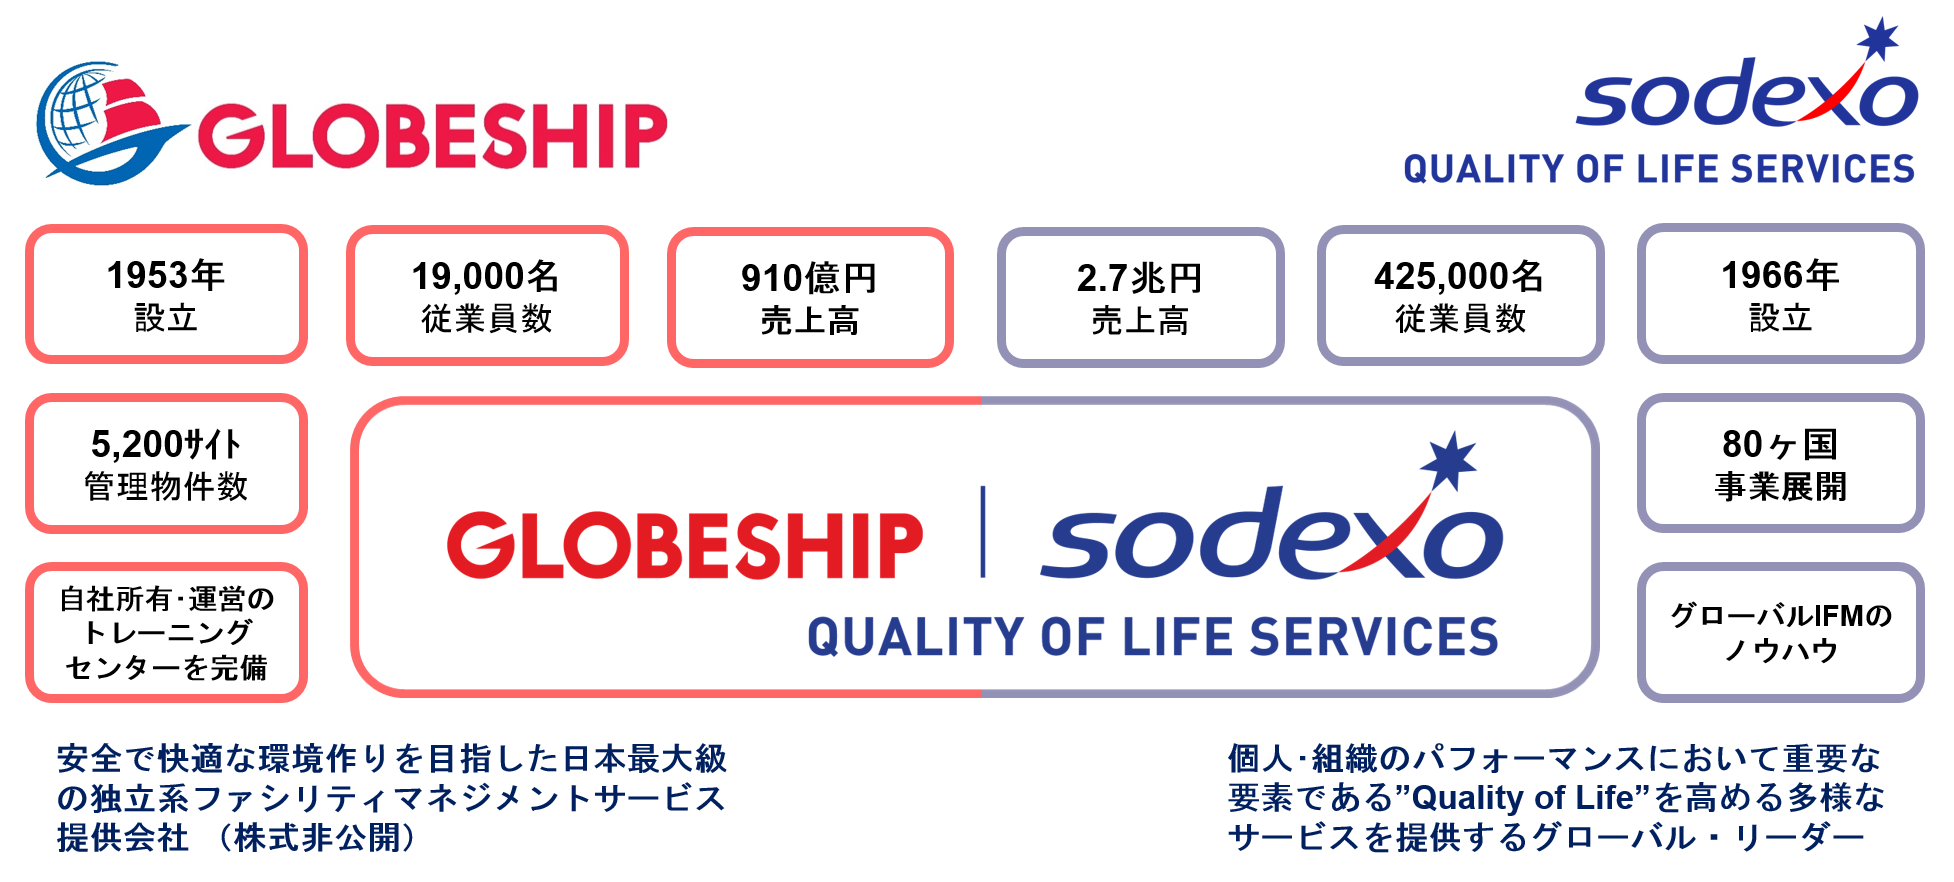 GSS18_Globeship_and_Sodexo_JP_001.png